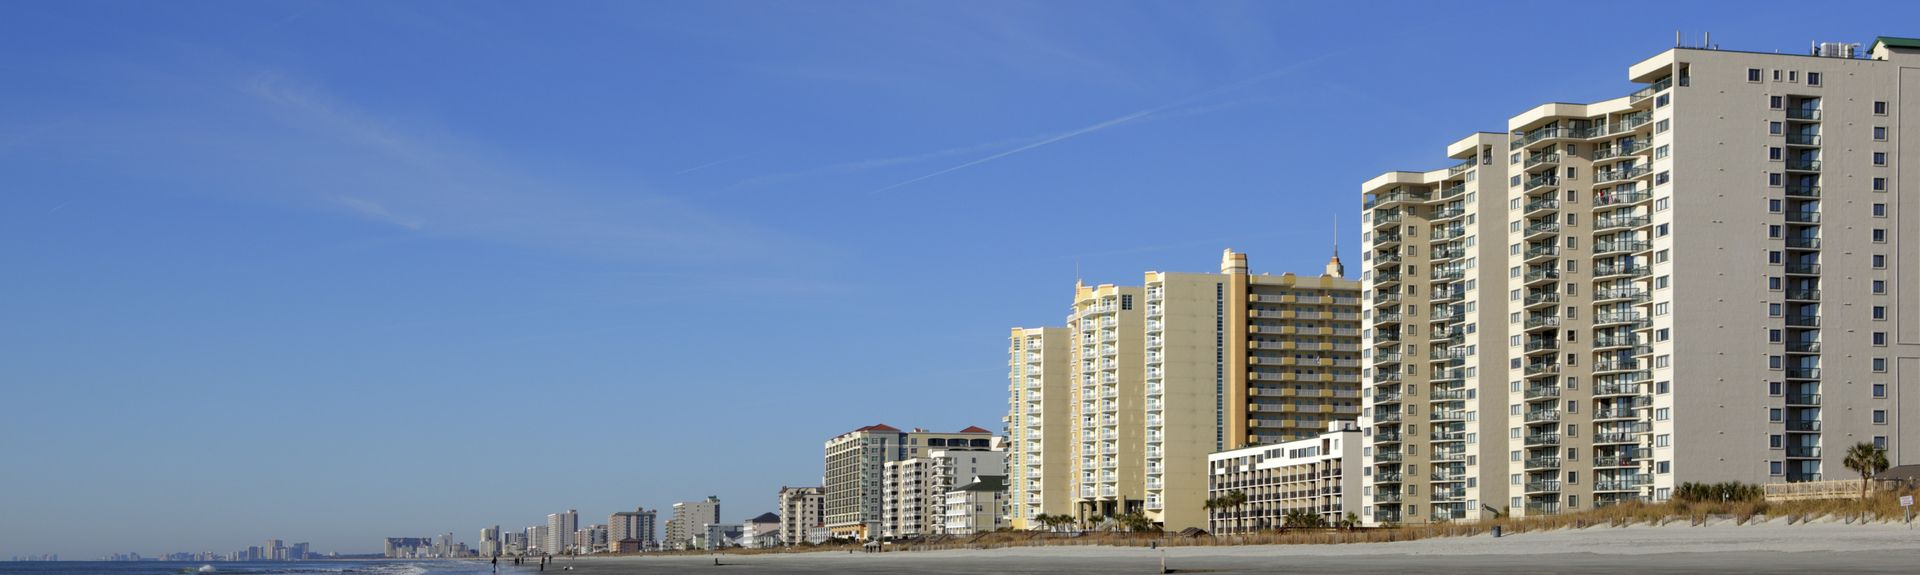 North Myrtle Beach, Carolina do Sul, Estados Unidos